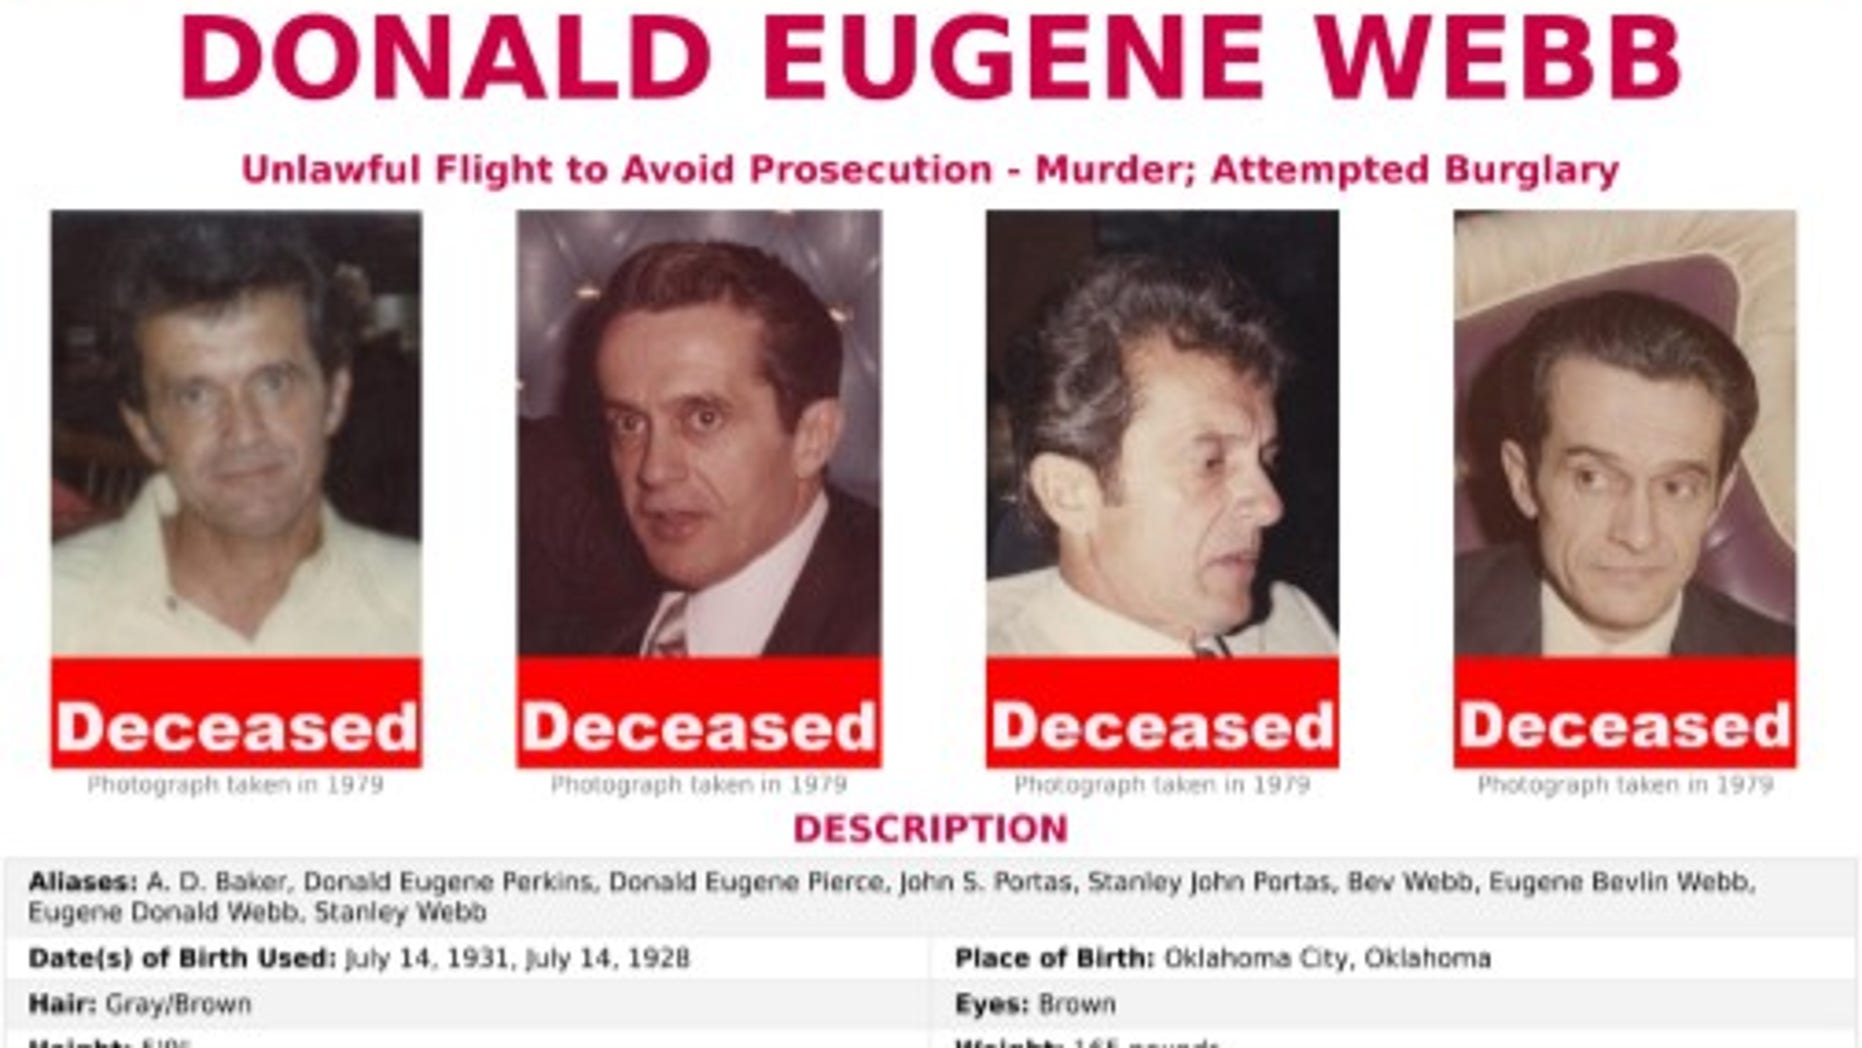 The remains of Donald Eugene Webb, a fugitive accused of killing a police chief in 1980, were discovered in a yard in Massachusetts, authorities confirmed on Friday.